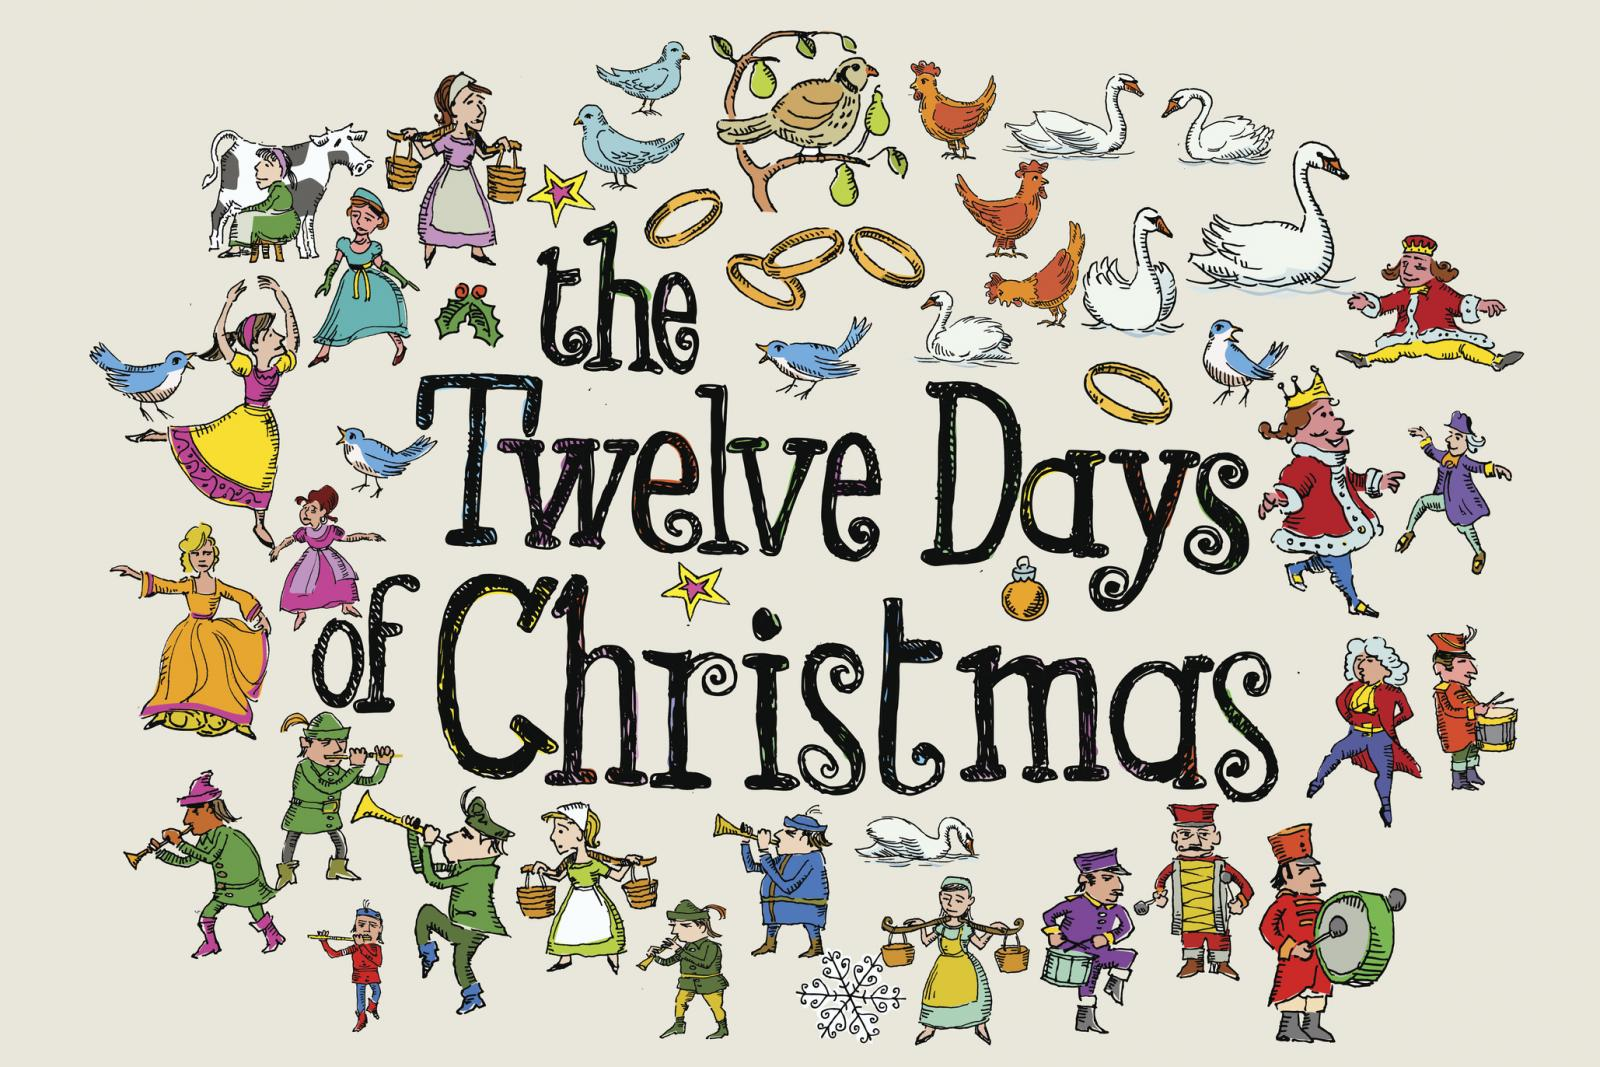 12 Days of Christmas Graphics.